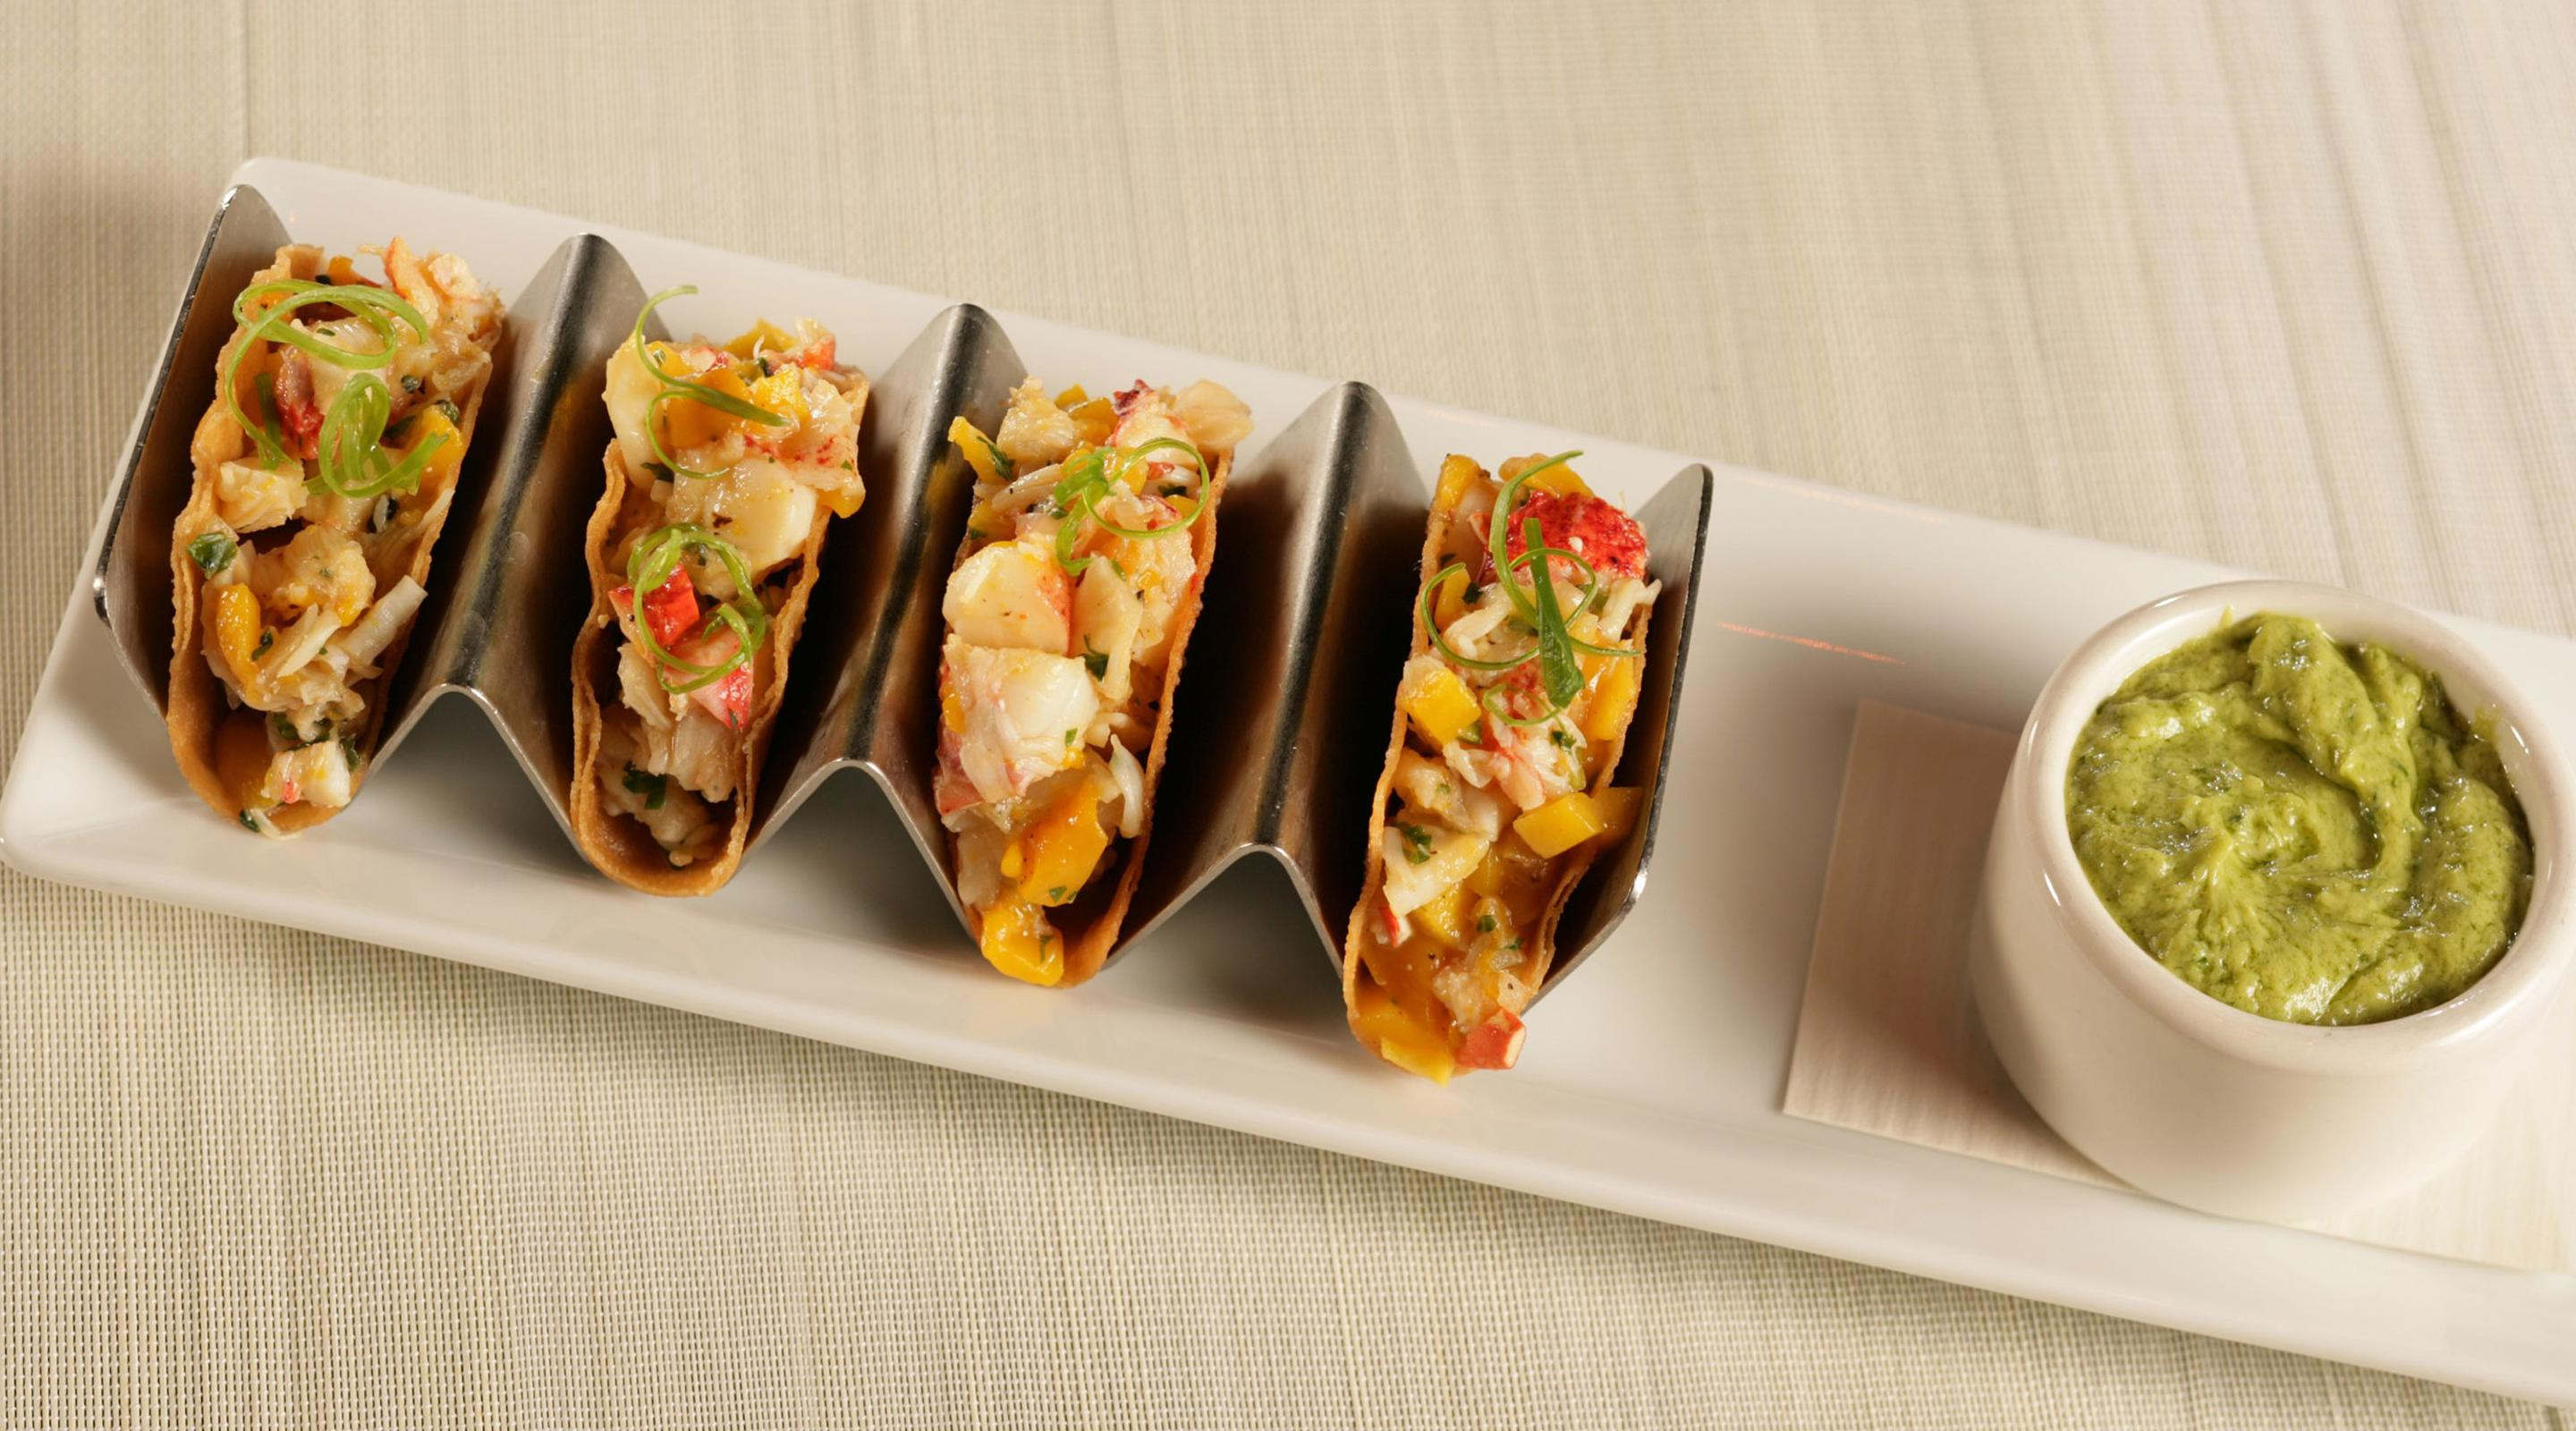 Fix serves lobster tacos.